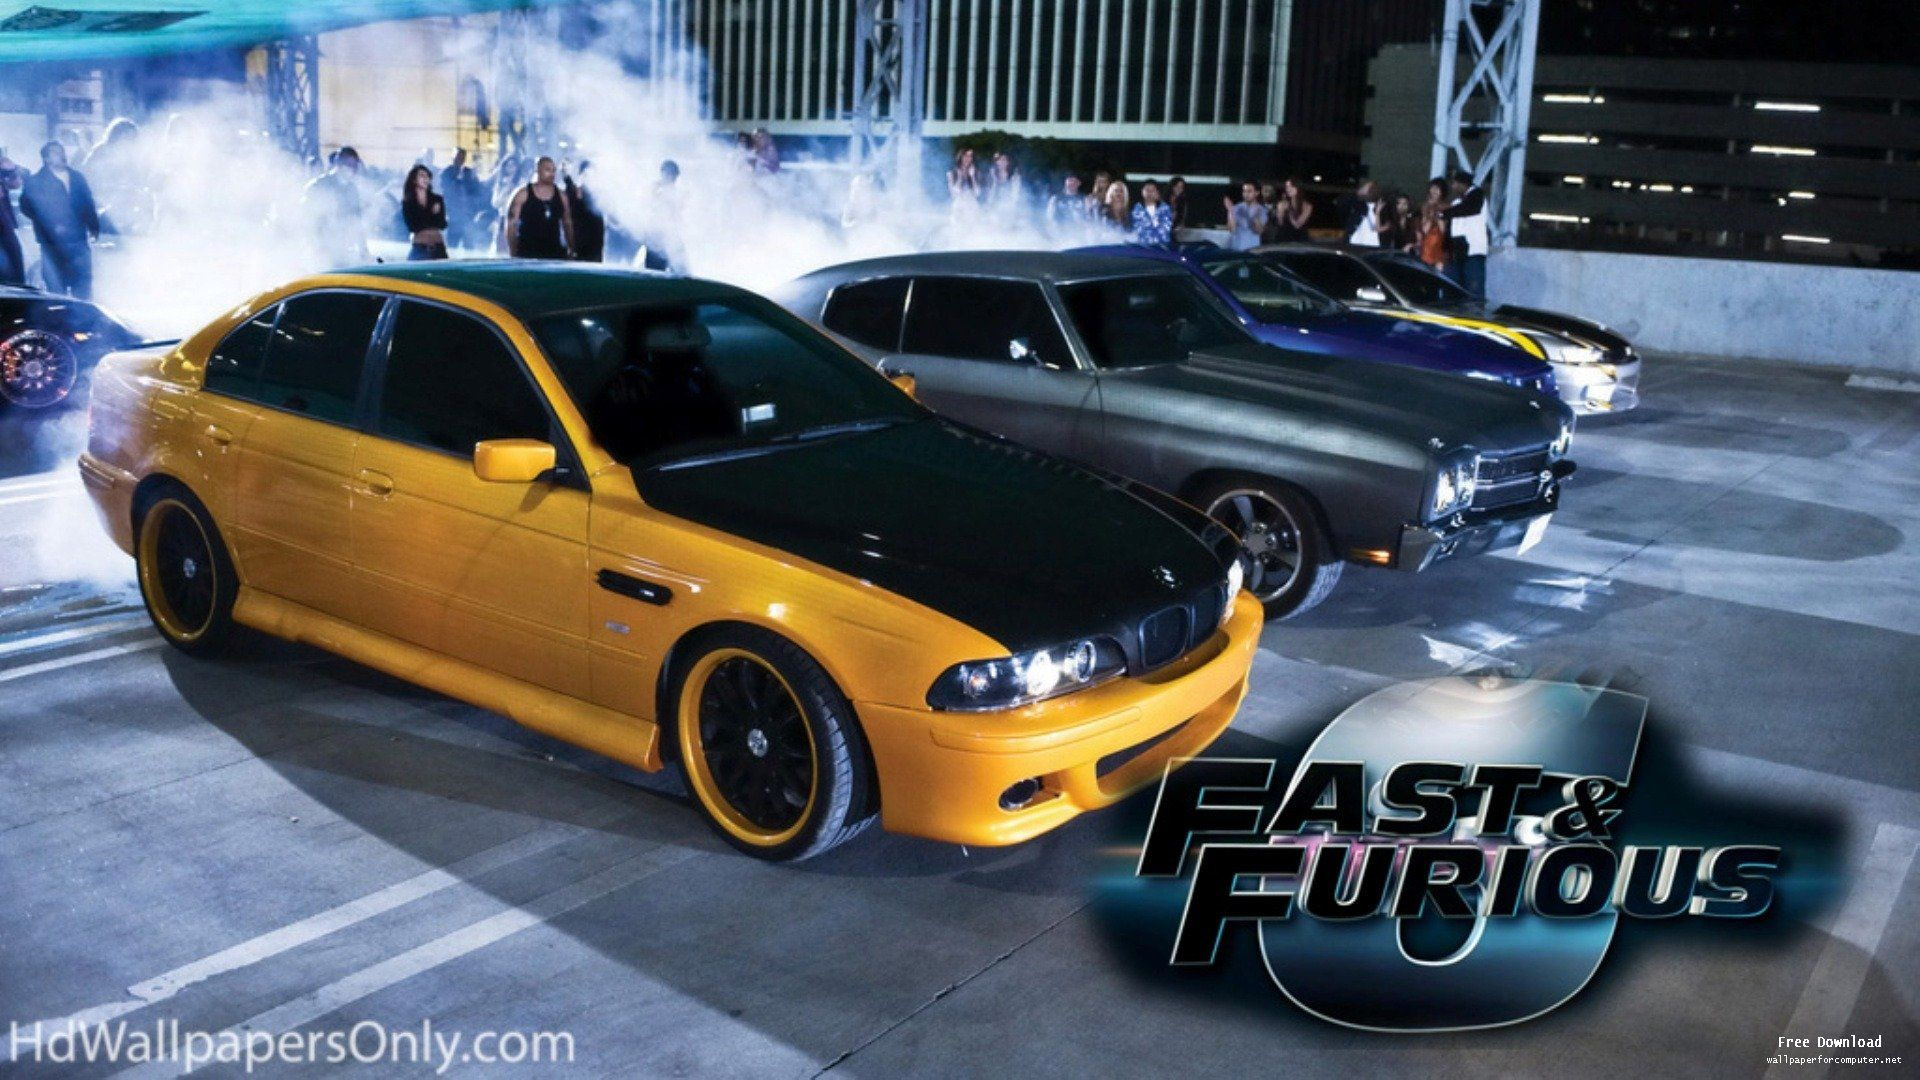 Fast And Furious Cars Wallpapers (#506152) - HD Wallpaper & Backgrounds  Download